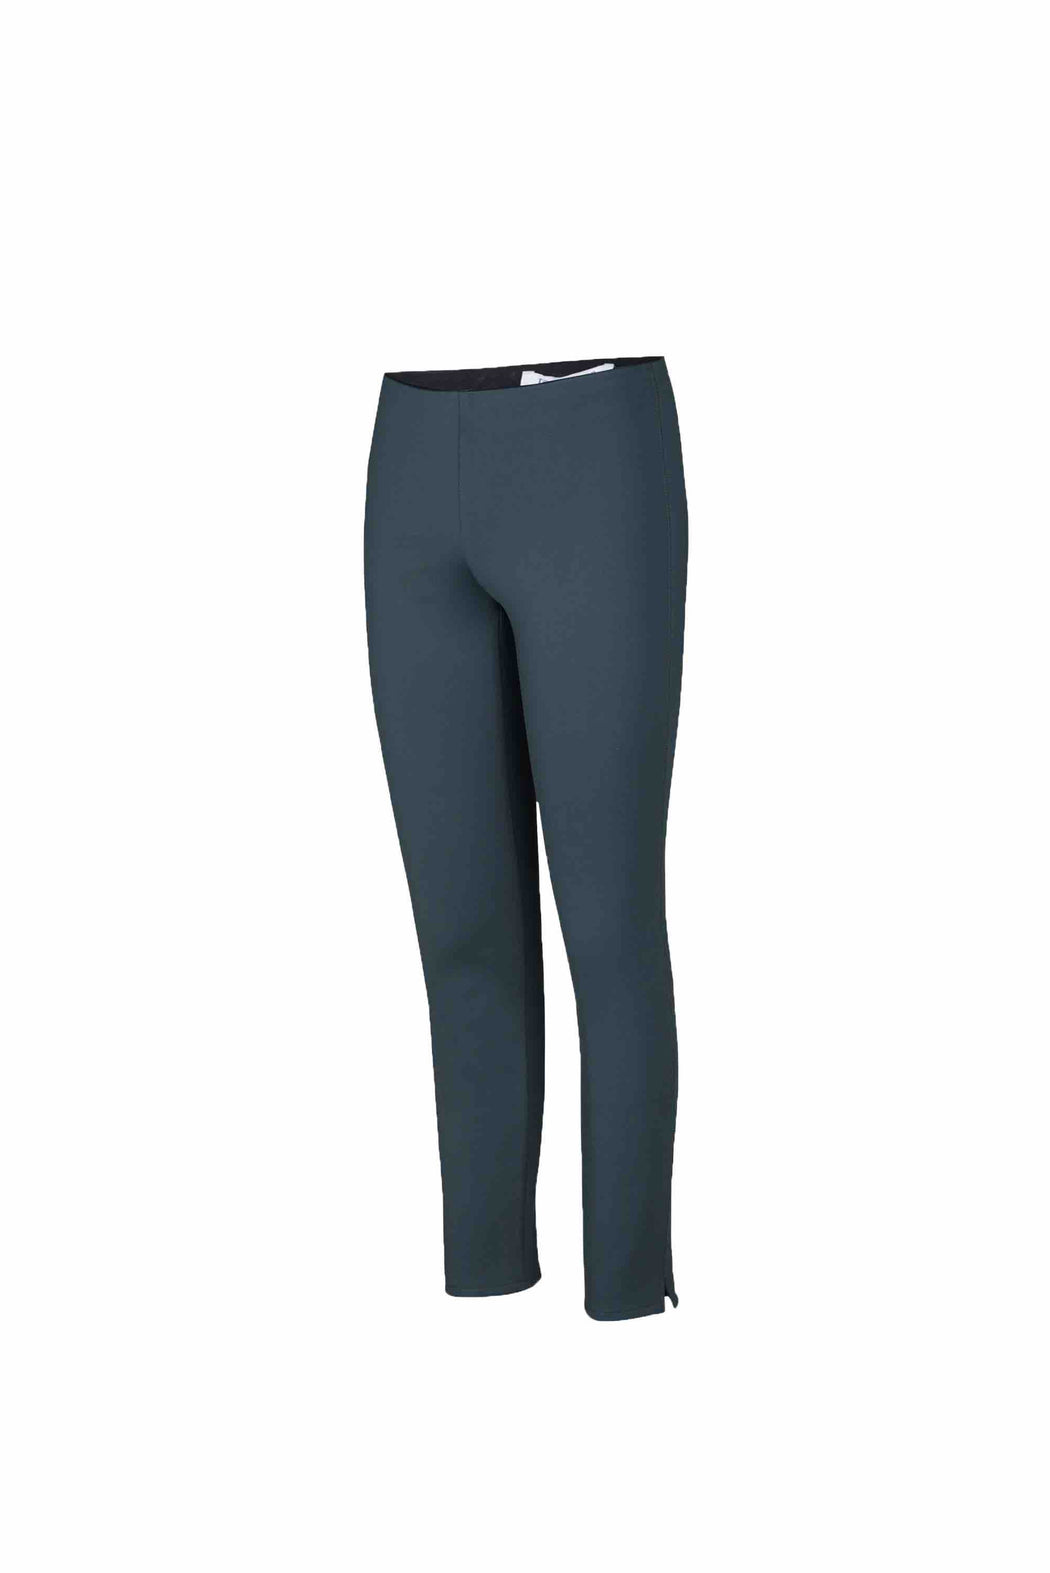 Side view of Women Super Stretchy Leggings in Dark Grey